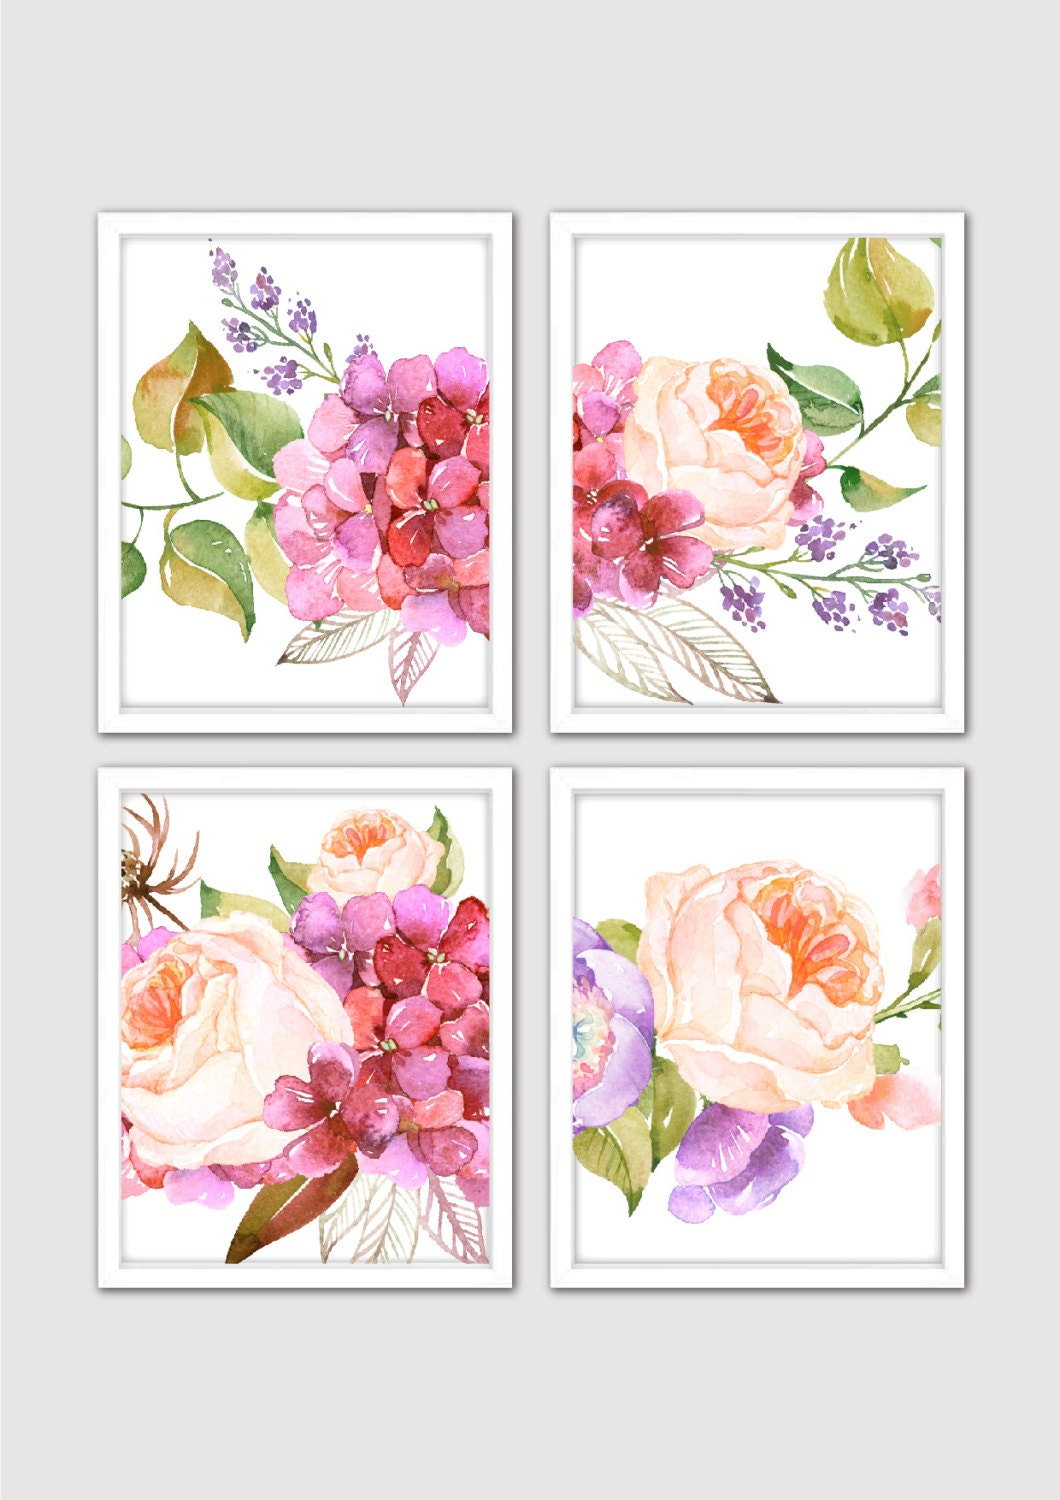 Watercolor sweet dreams floral prints floral nursery print for Art sites like etsy